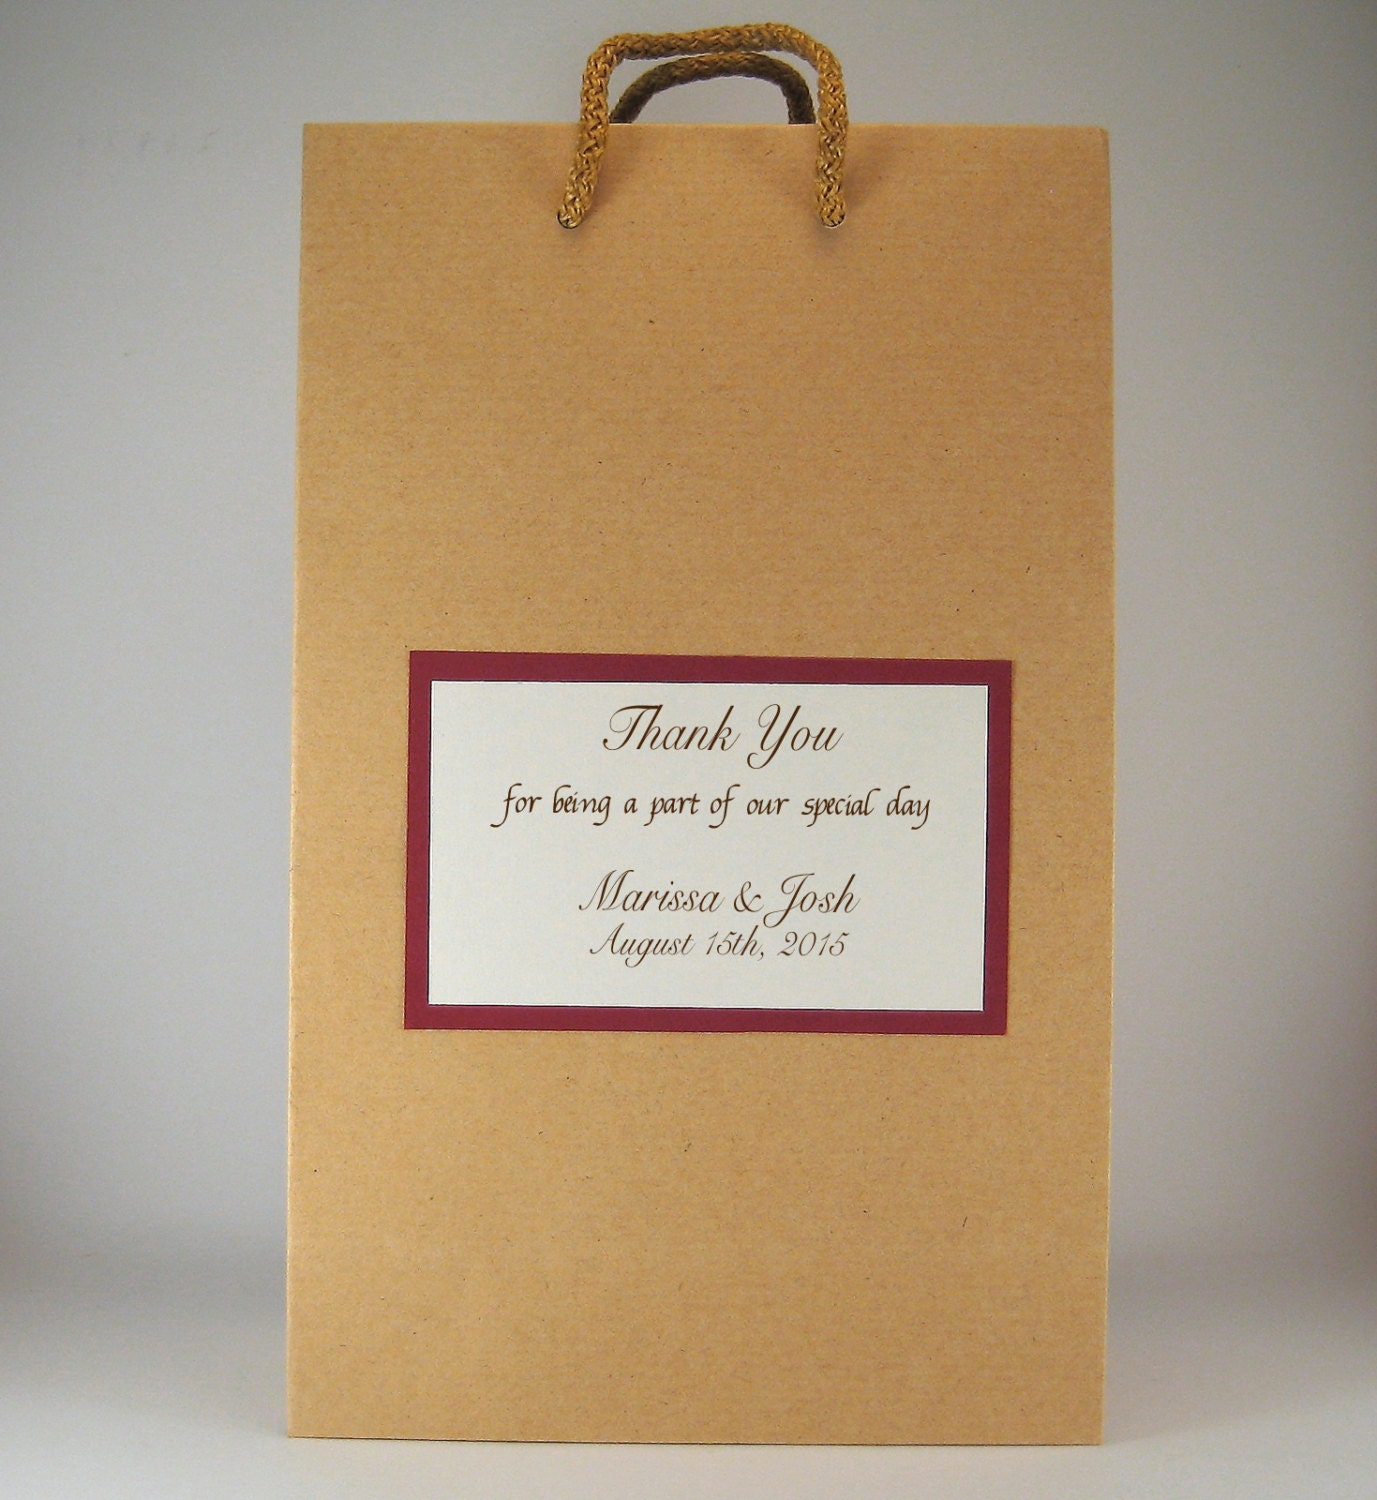 Wedding Favor Gift Bags: Personalized Wedding Favor Bags 50 Rustic Wedding Gift Bags